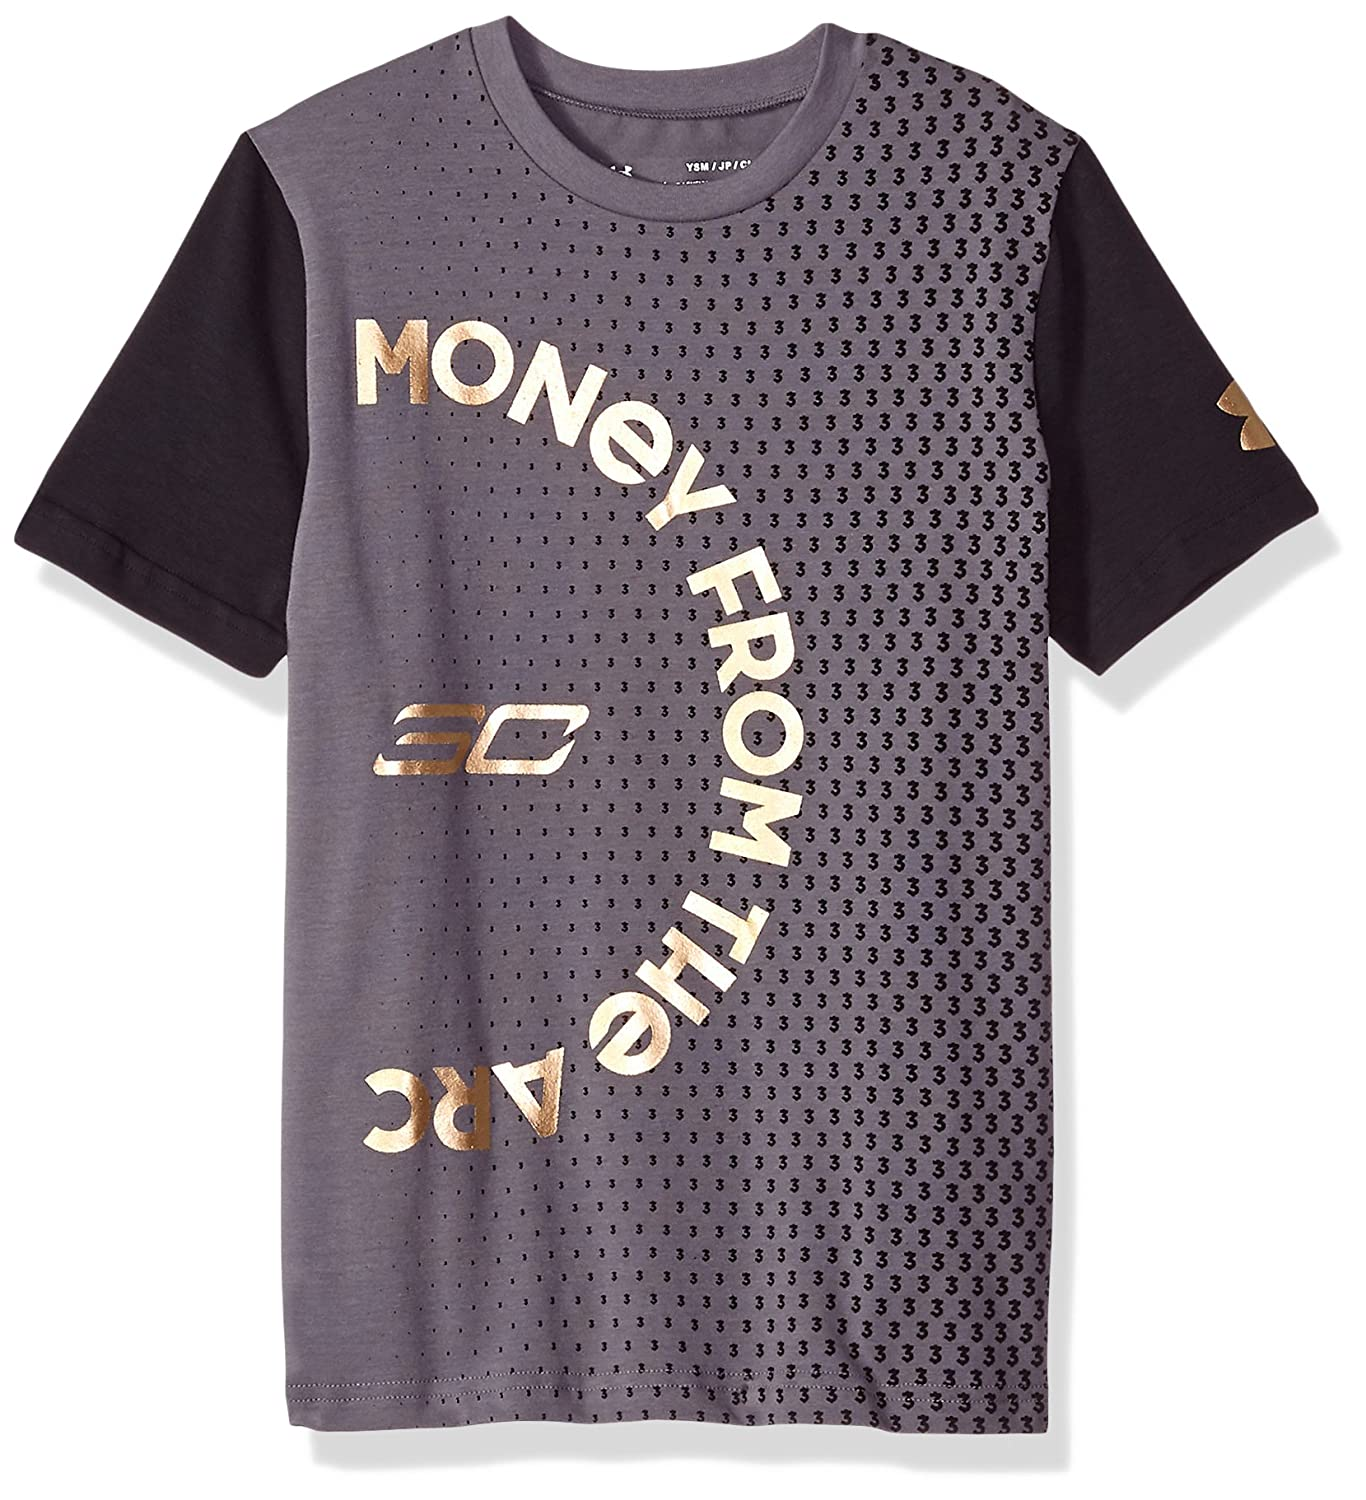 b8bd66dff9b Amazon.com  Under Armour Boys SC30 Money From The Arc ss Tee  Sports    Outdoors